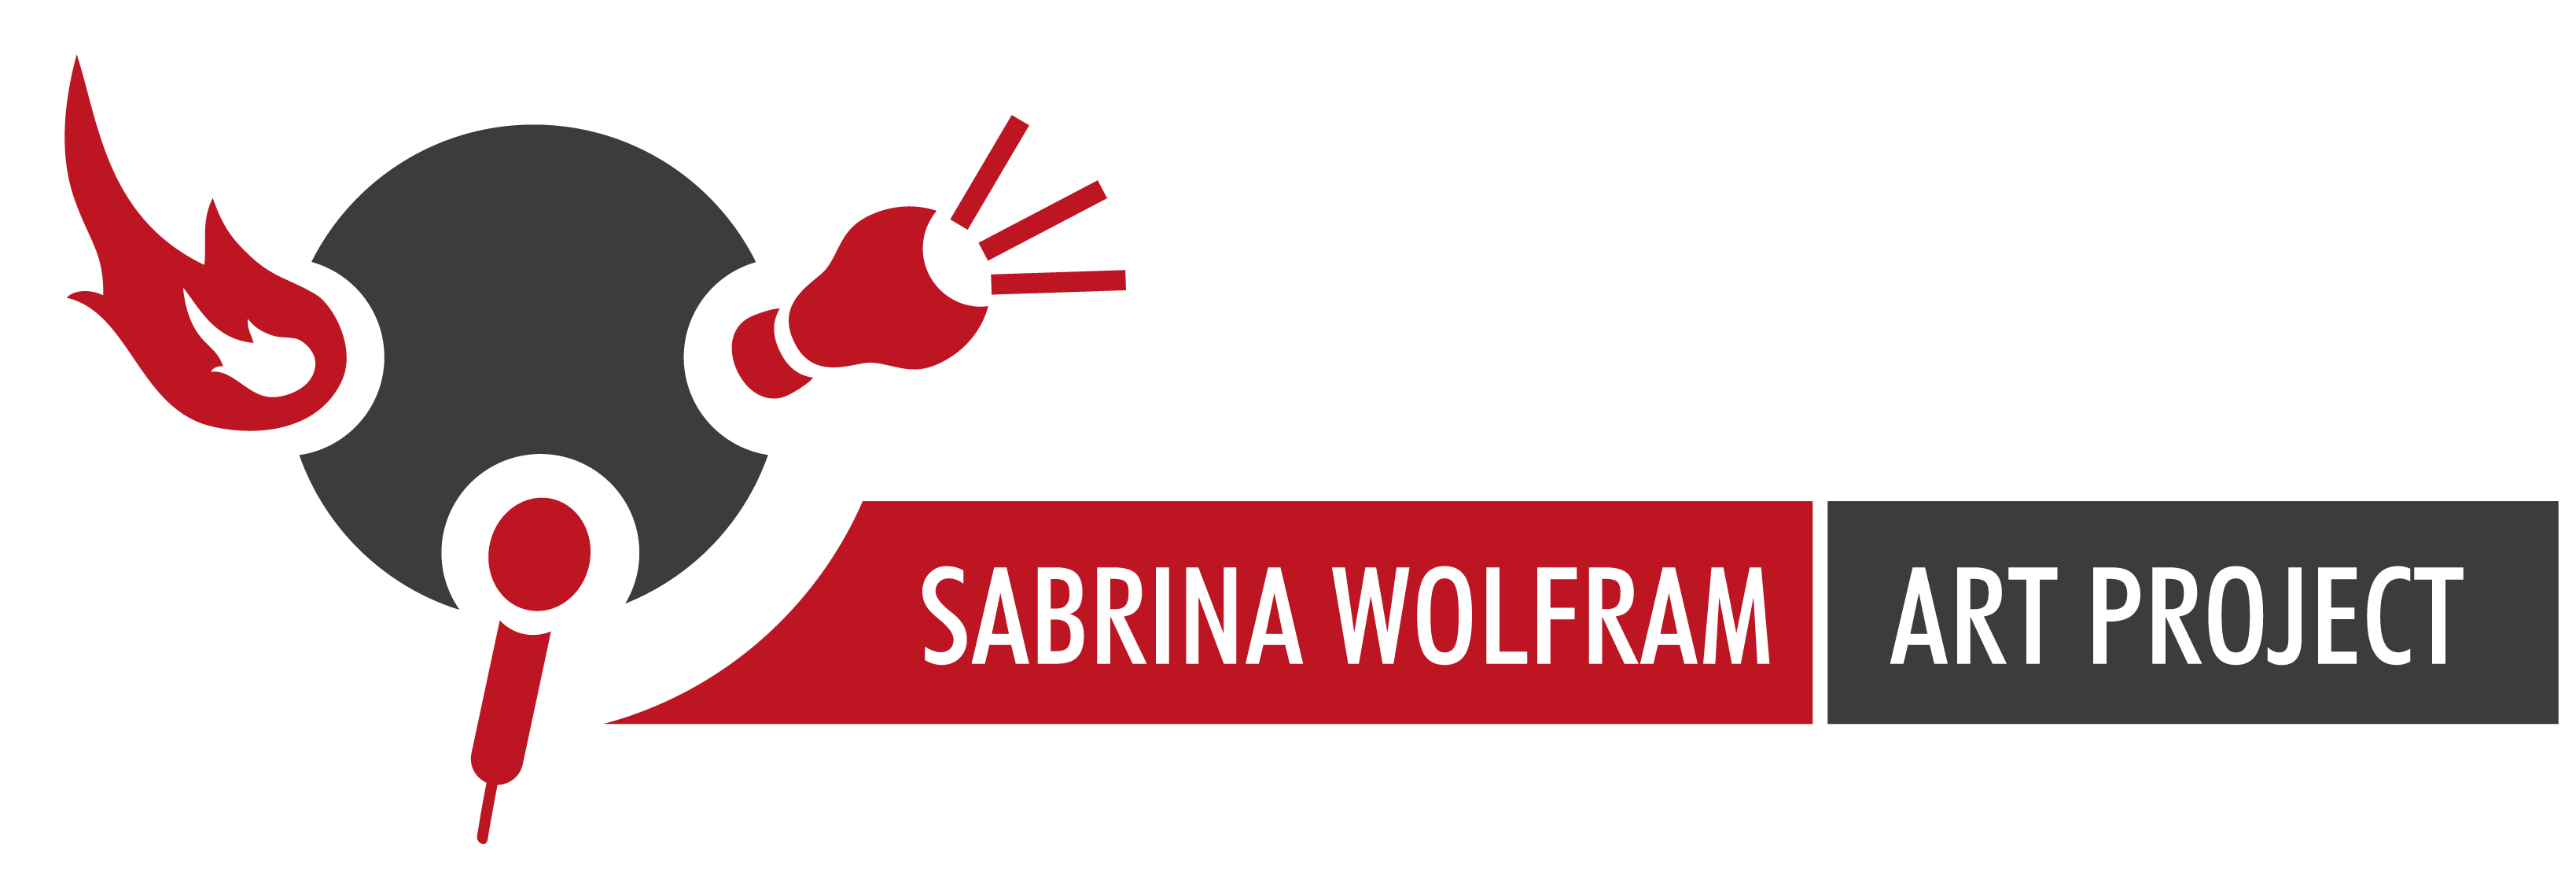 Sabrina Wolfram Art Project